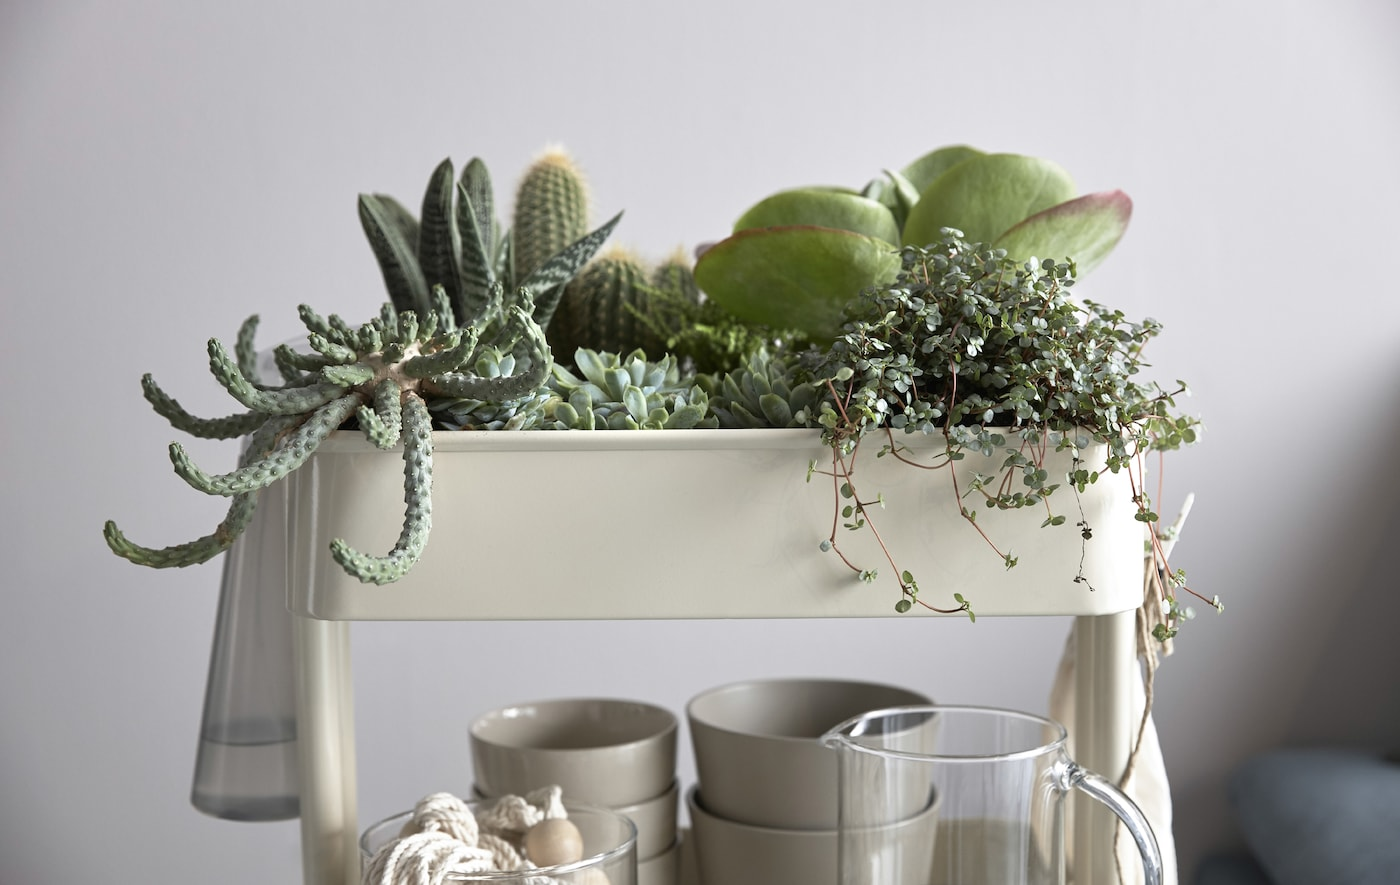 A close-up of RÅSKOG trolley being used as an indoor garden filled with succulents and cactus.